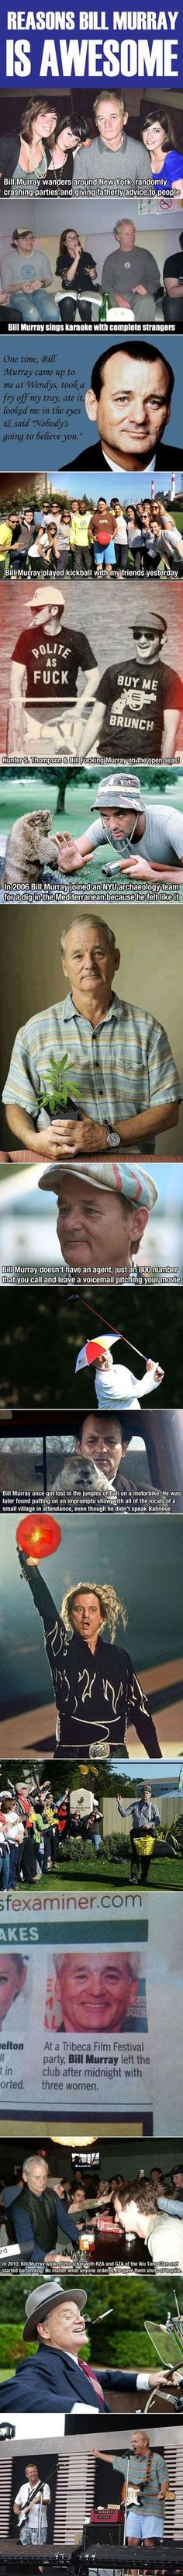 Why Bill Murray Is One Of The Most Awesome Guys In The World on imgfave